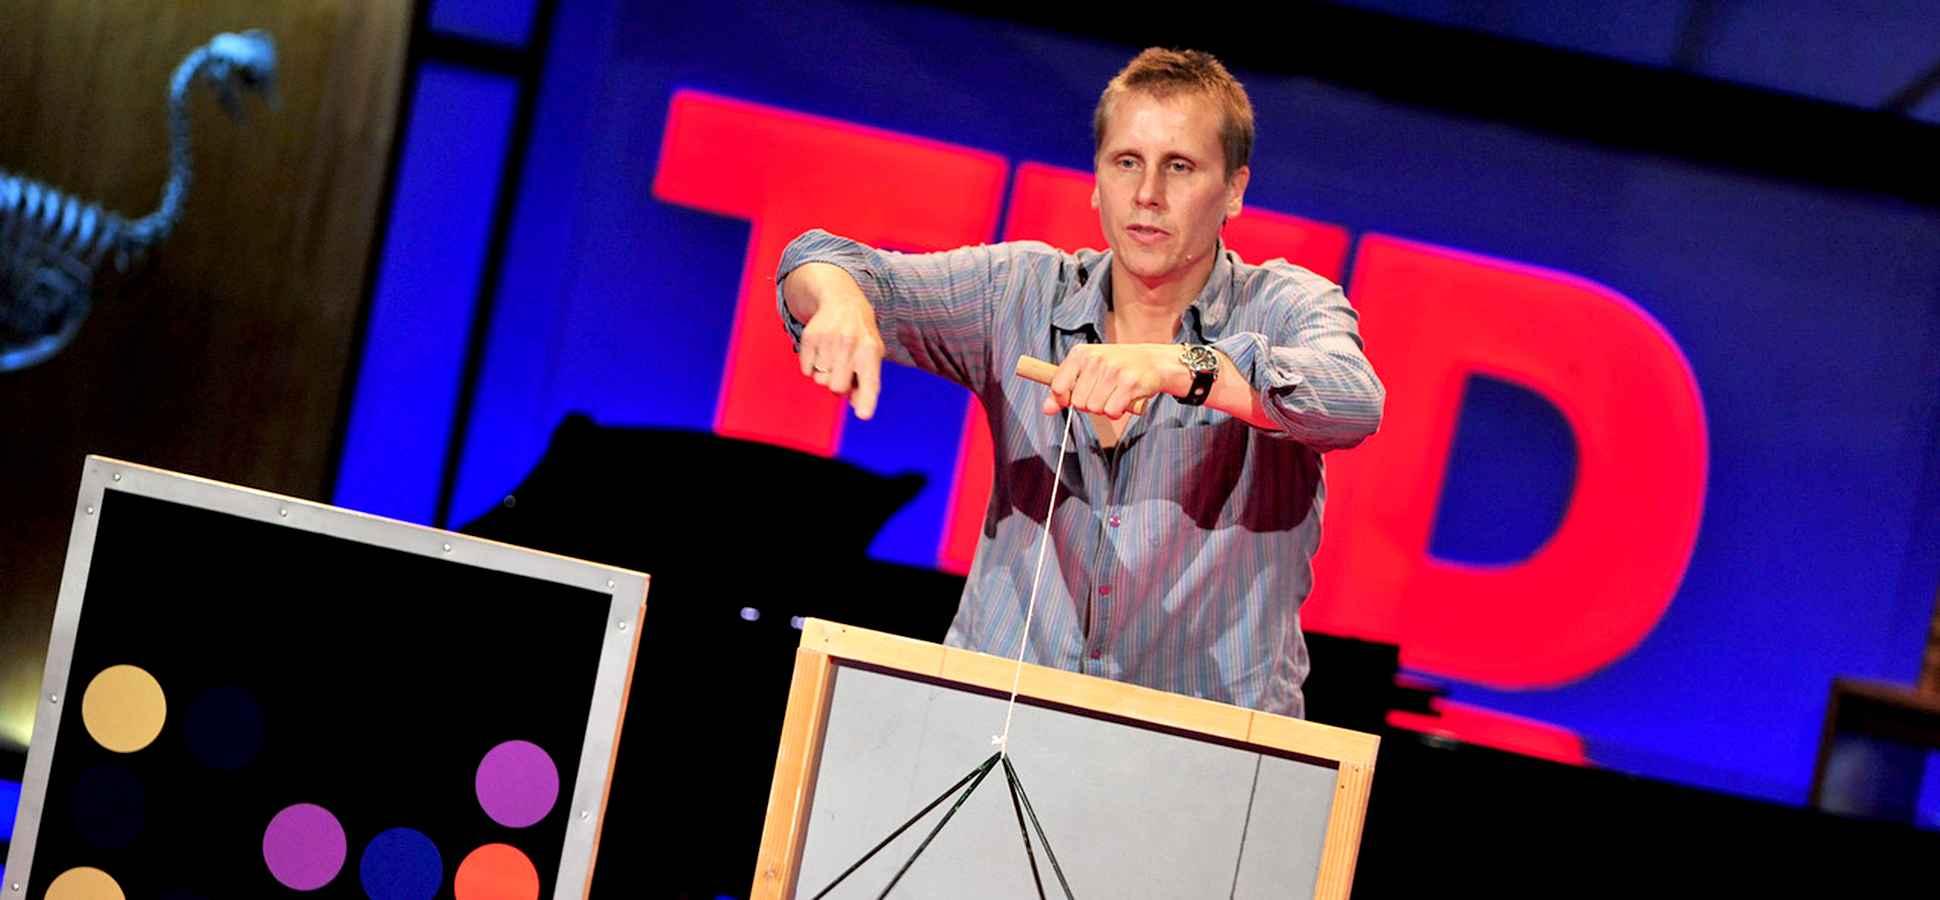 6 TED Talks About Illusion That Will Make You Doubt Your Own Brain